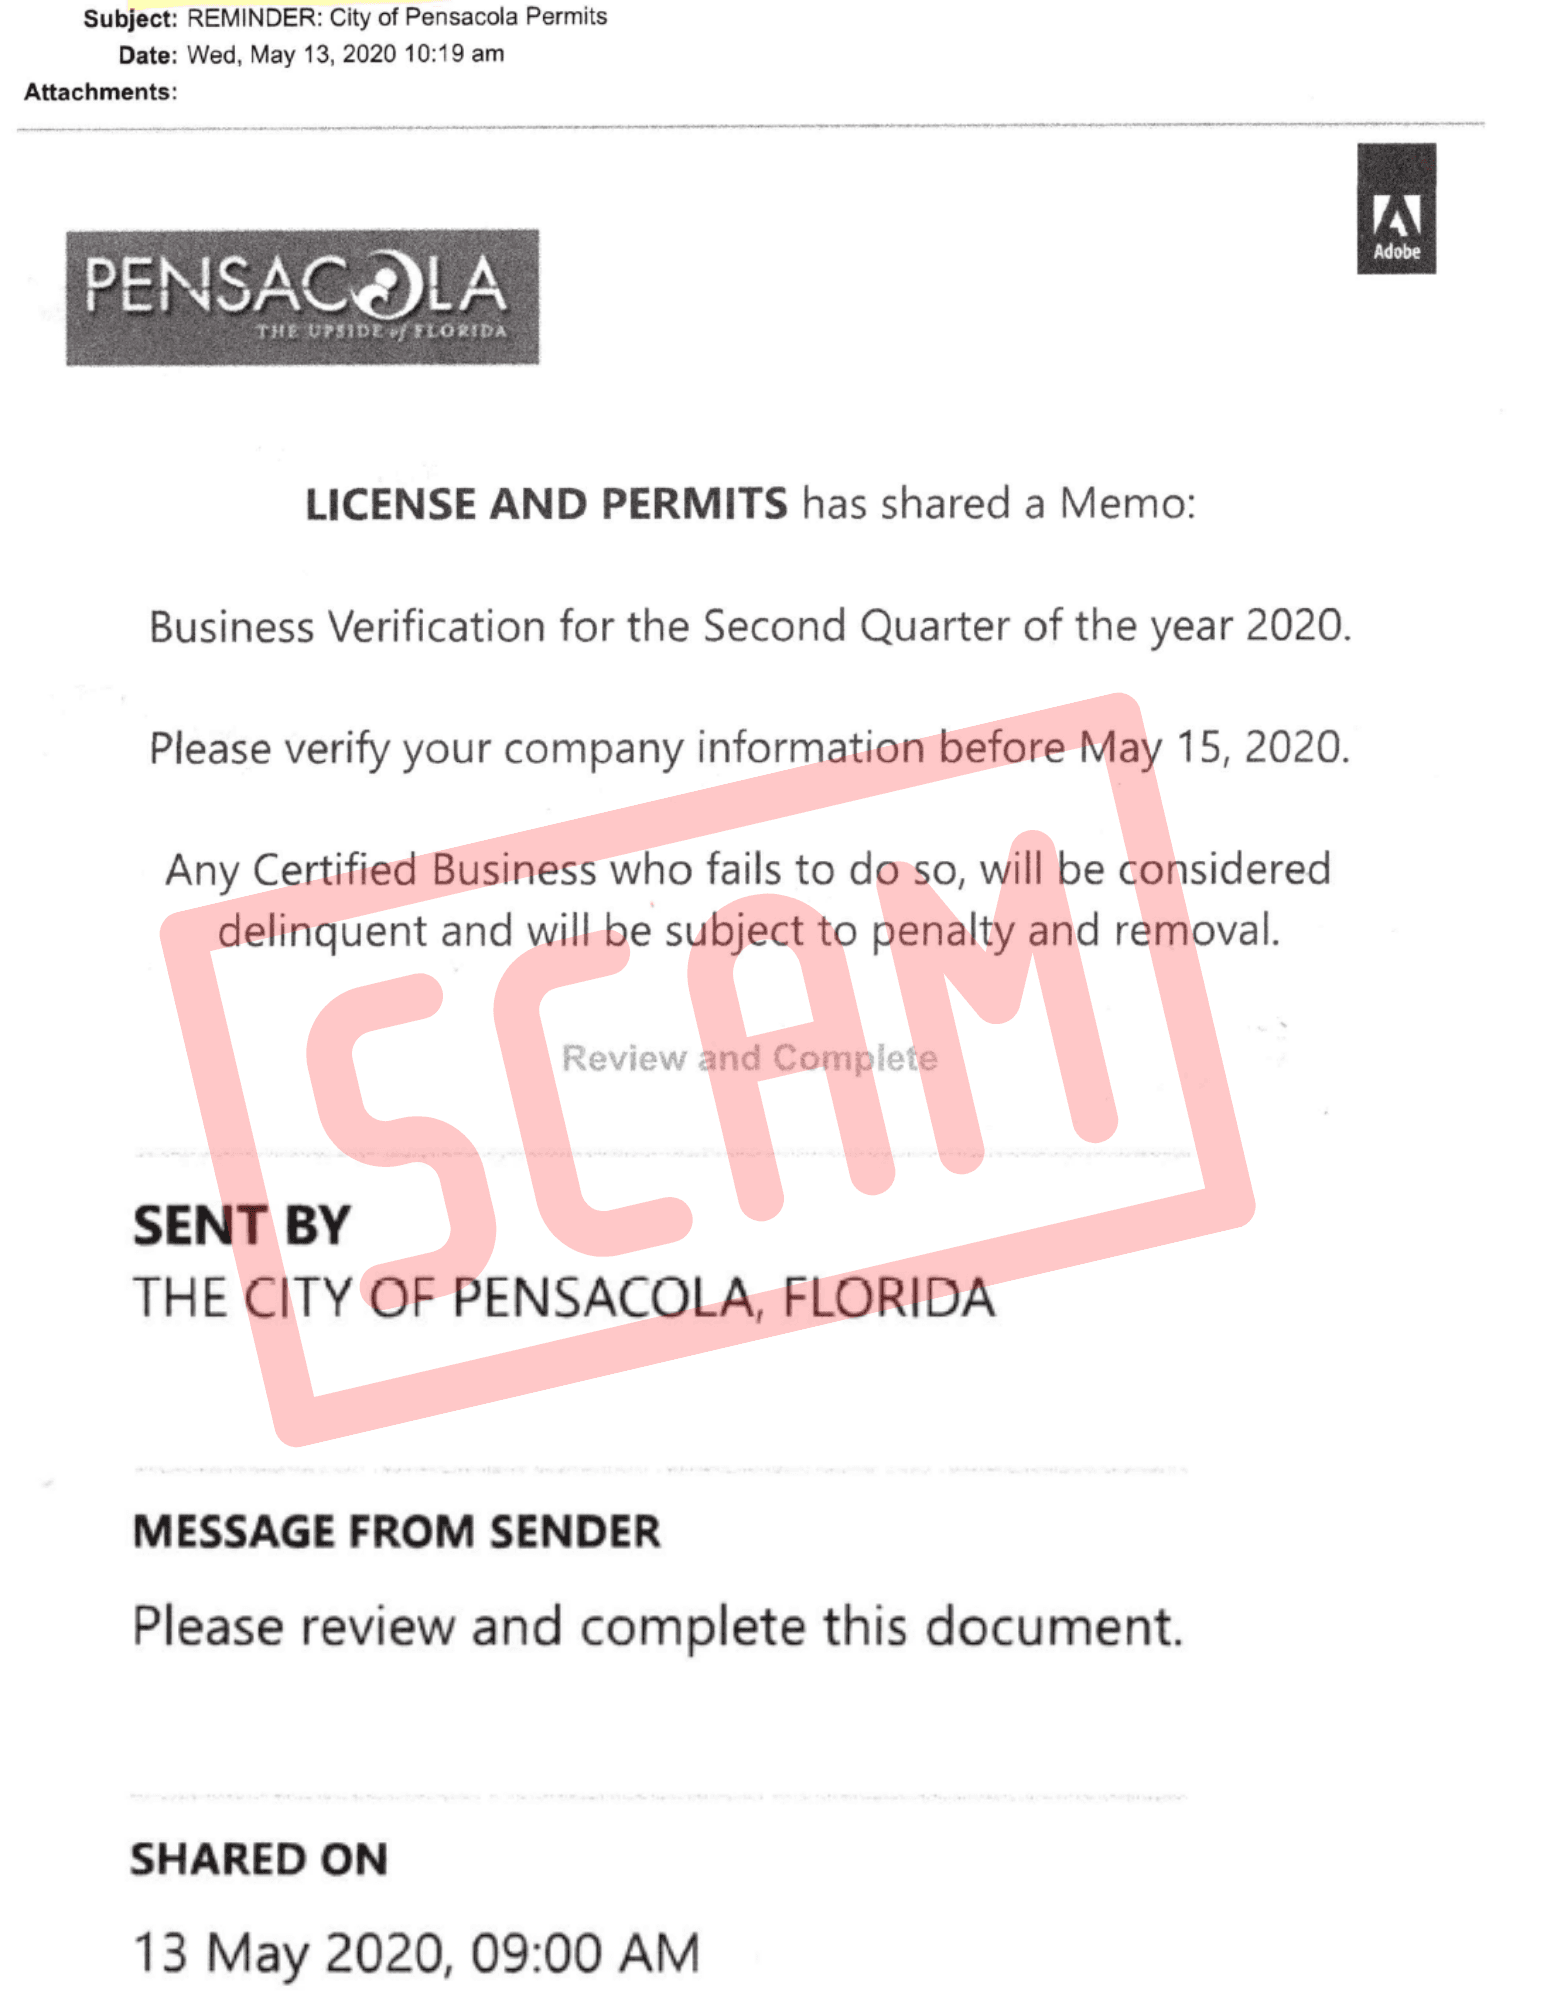 The City of Pensacola has received reports of a fraudulent email sent to local contractors this week